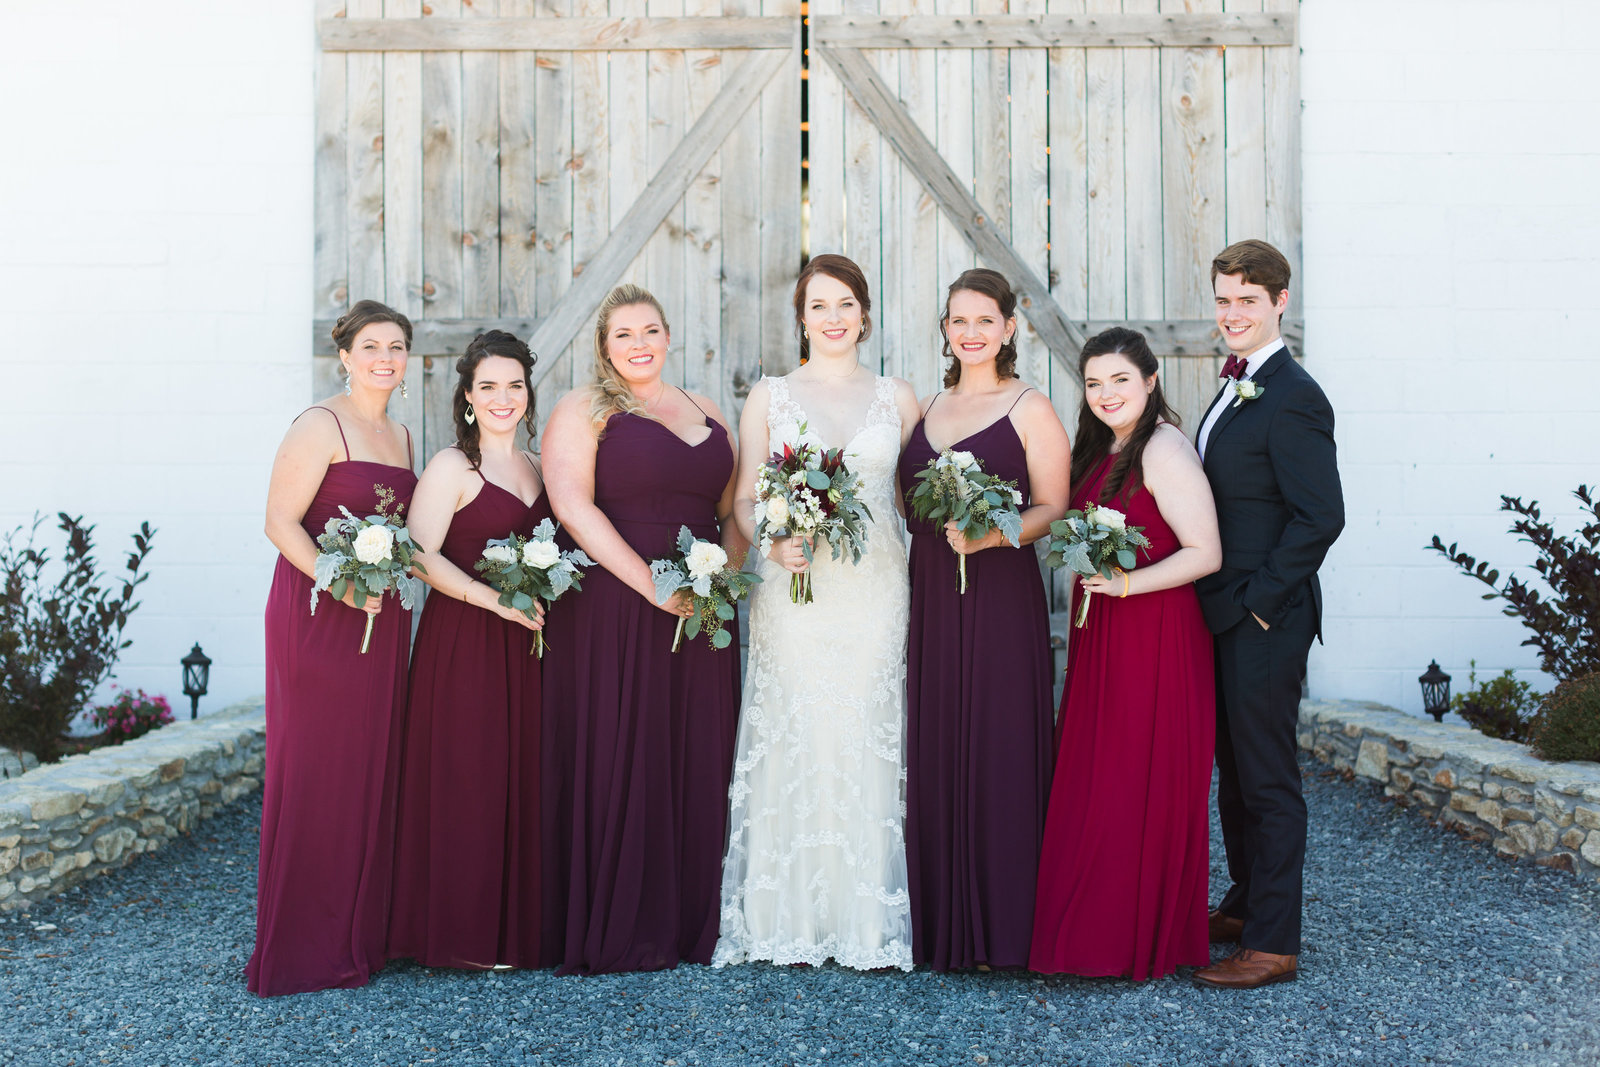 Vinny and Jenna Married-Wedding Party-Samantha Laffoon Photography- (23)